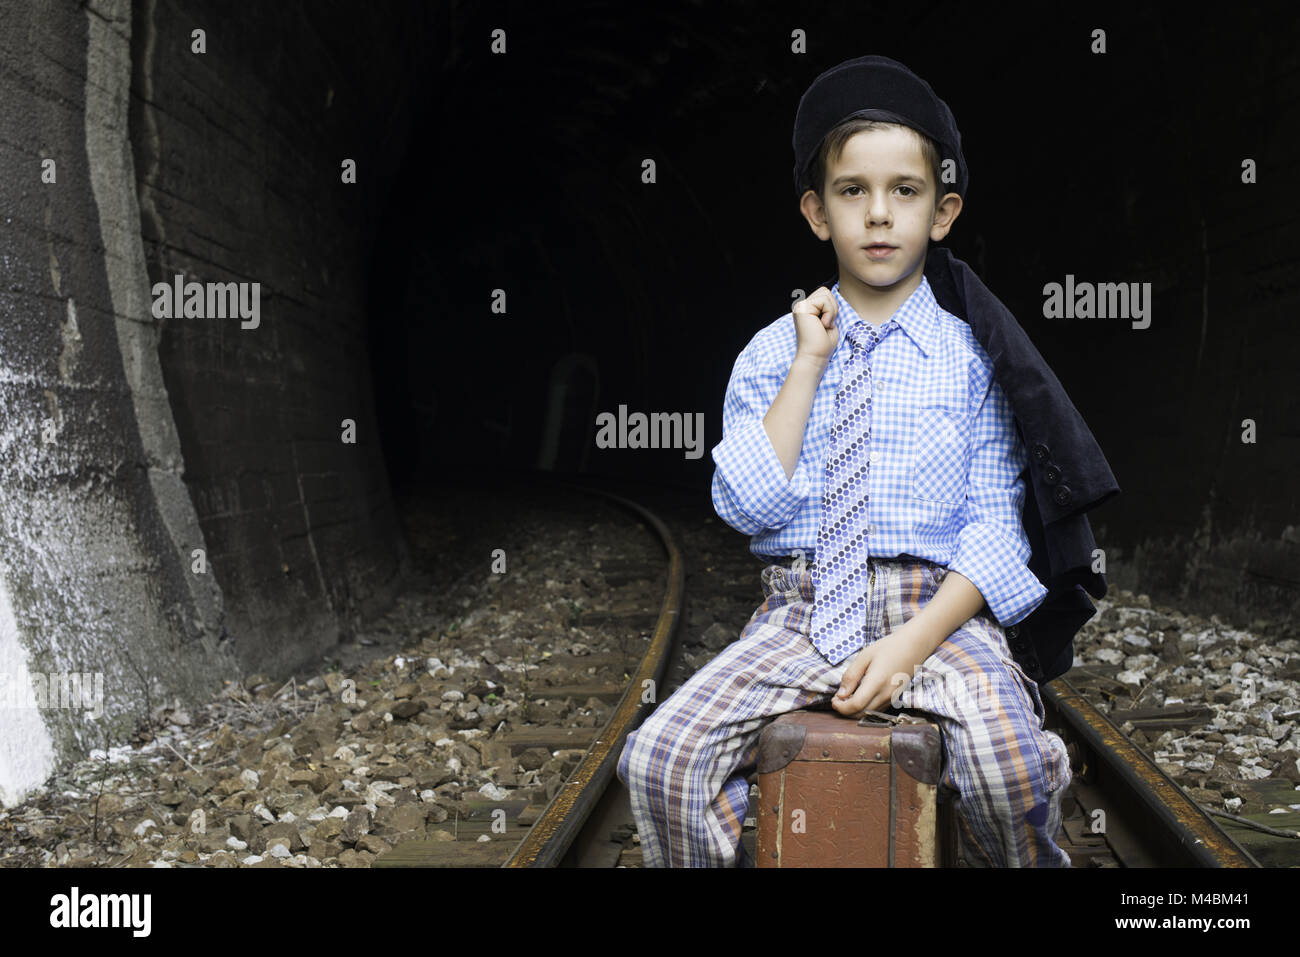 Child in vintage clothes sits on railway road Stock Photo